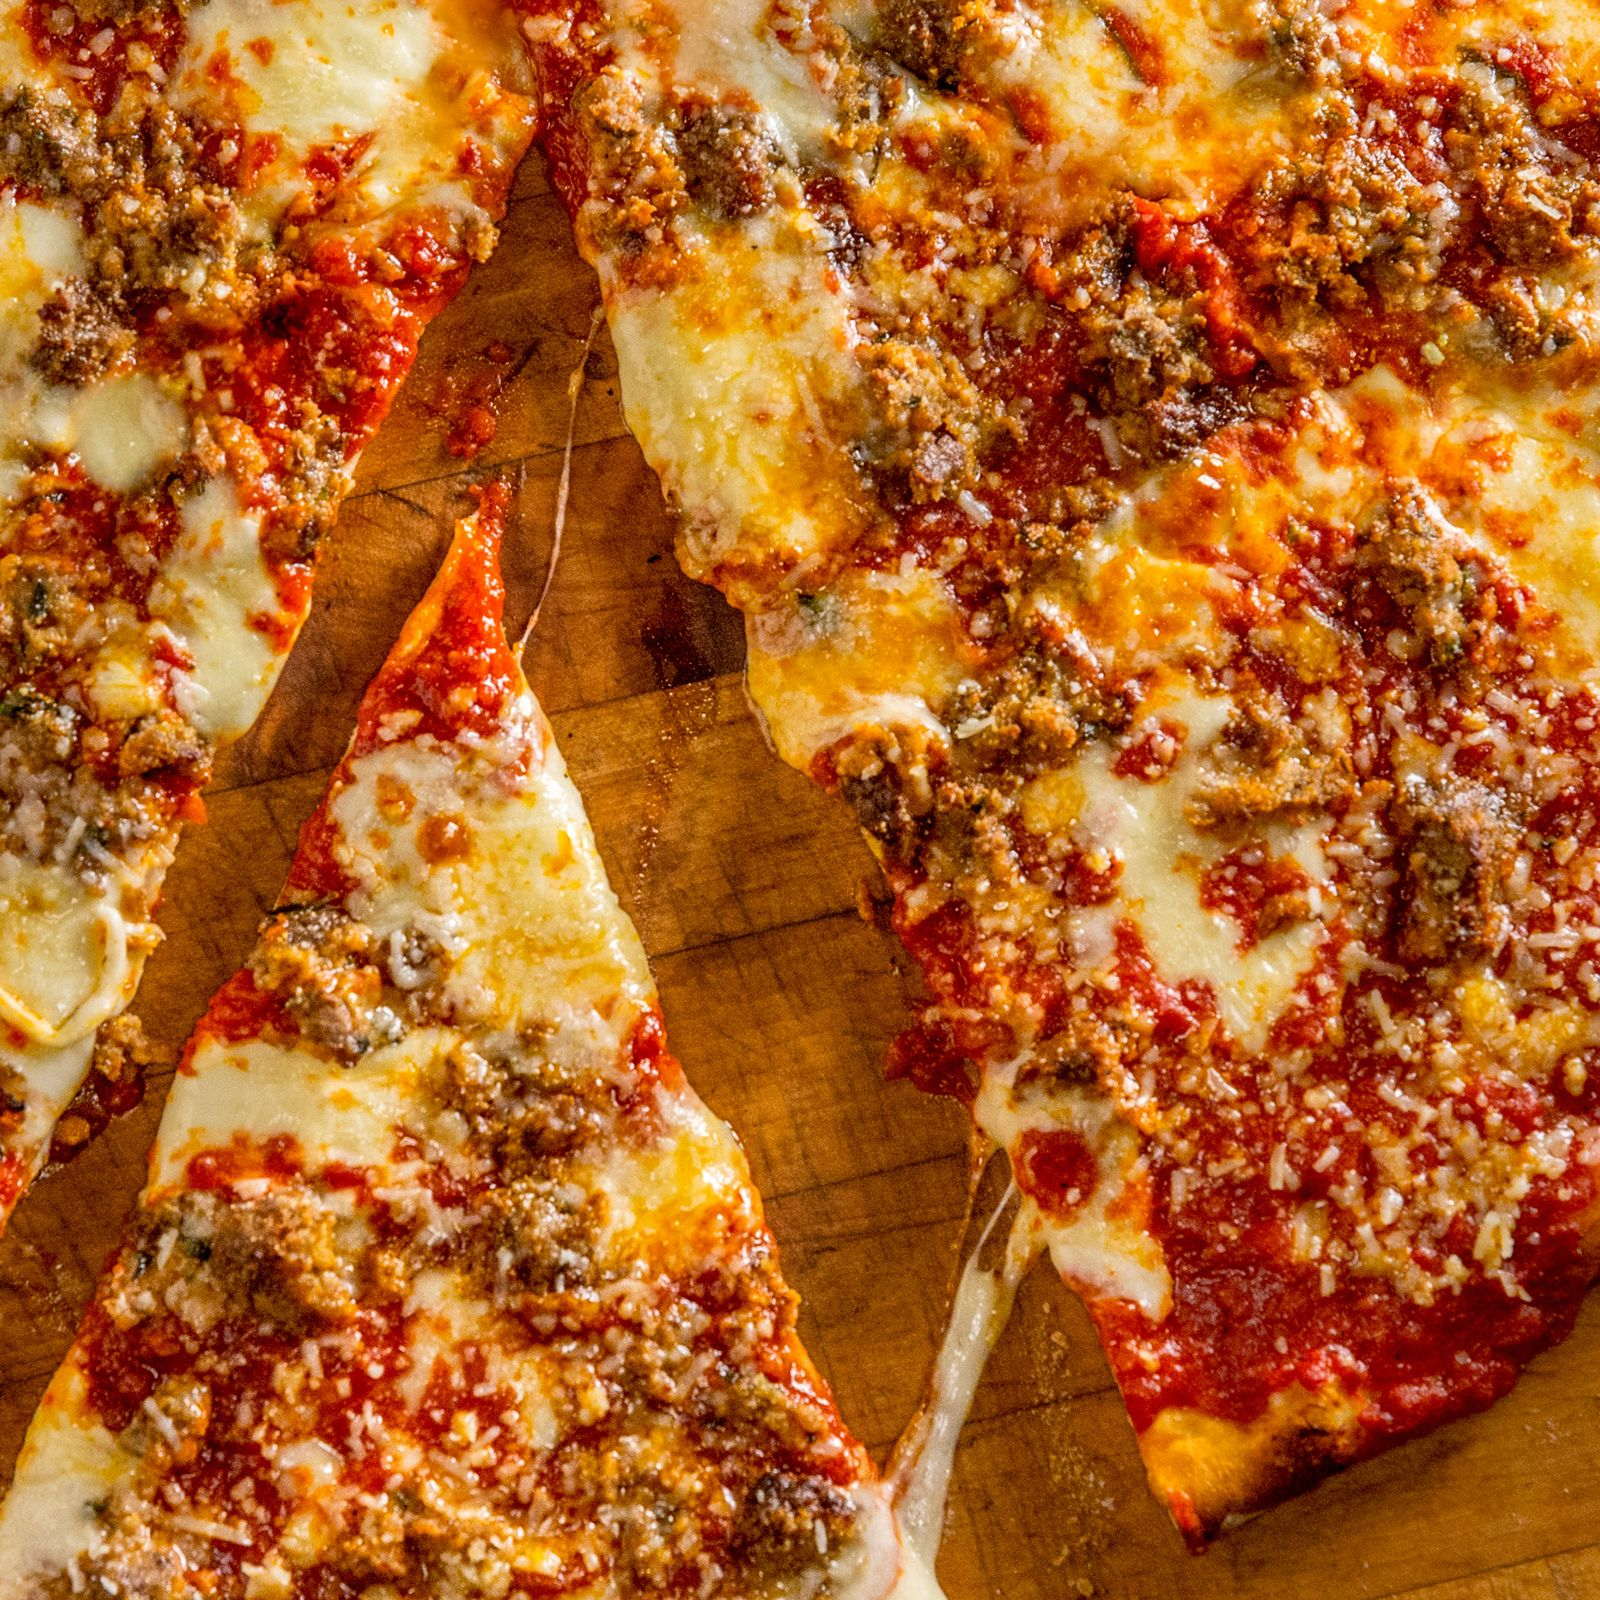 Famed authentic New York pizza concept, Artichoke Basilles Pizza, will open its first location across the Hudson River at 96 Hudson Street in Hoboken, New Jersey on Monday, October 7 at 11 a..m. The opening marks the first of five Artichoke Pizza locations to be opened across the state by franchisees Premal & Leelawathi Shanghvi.